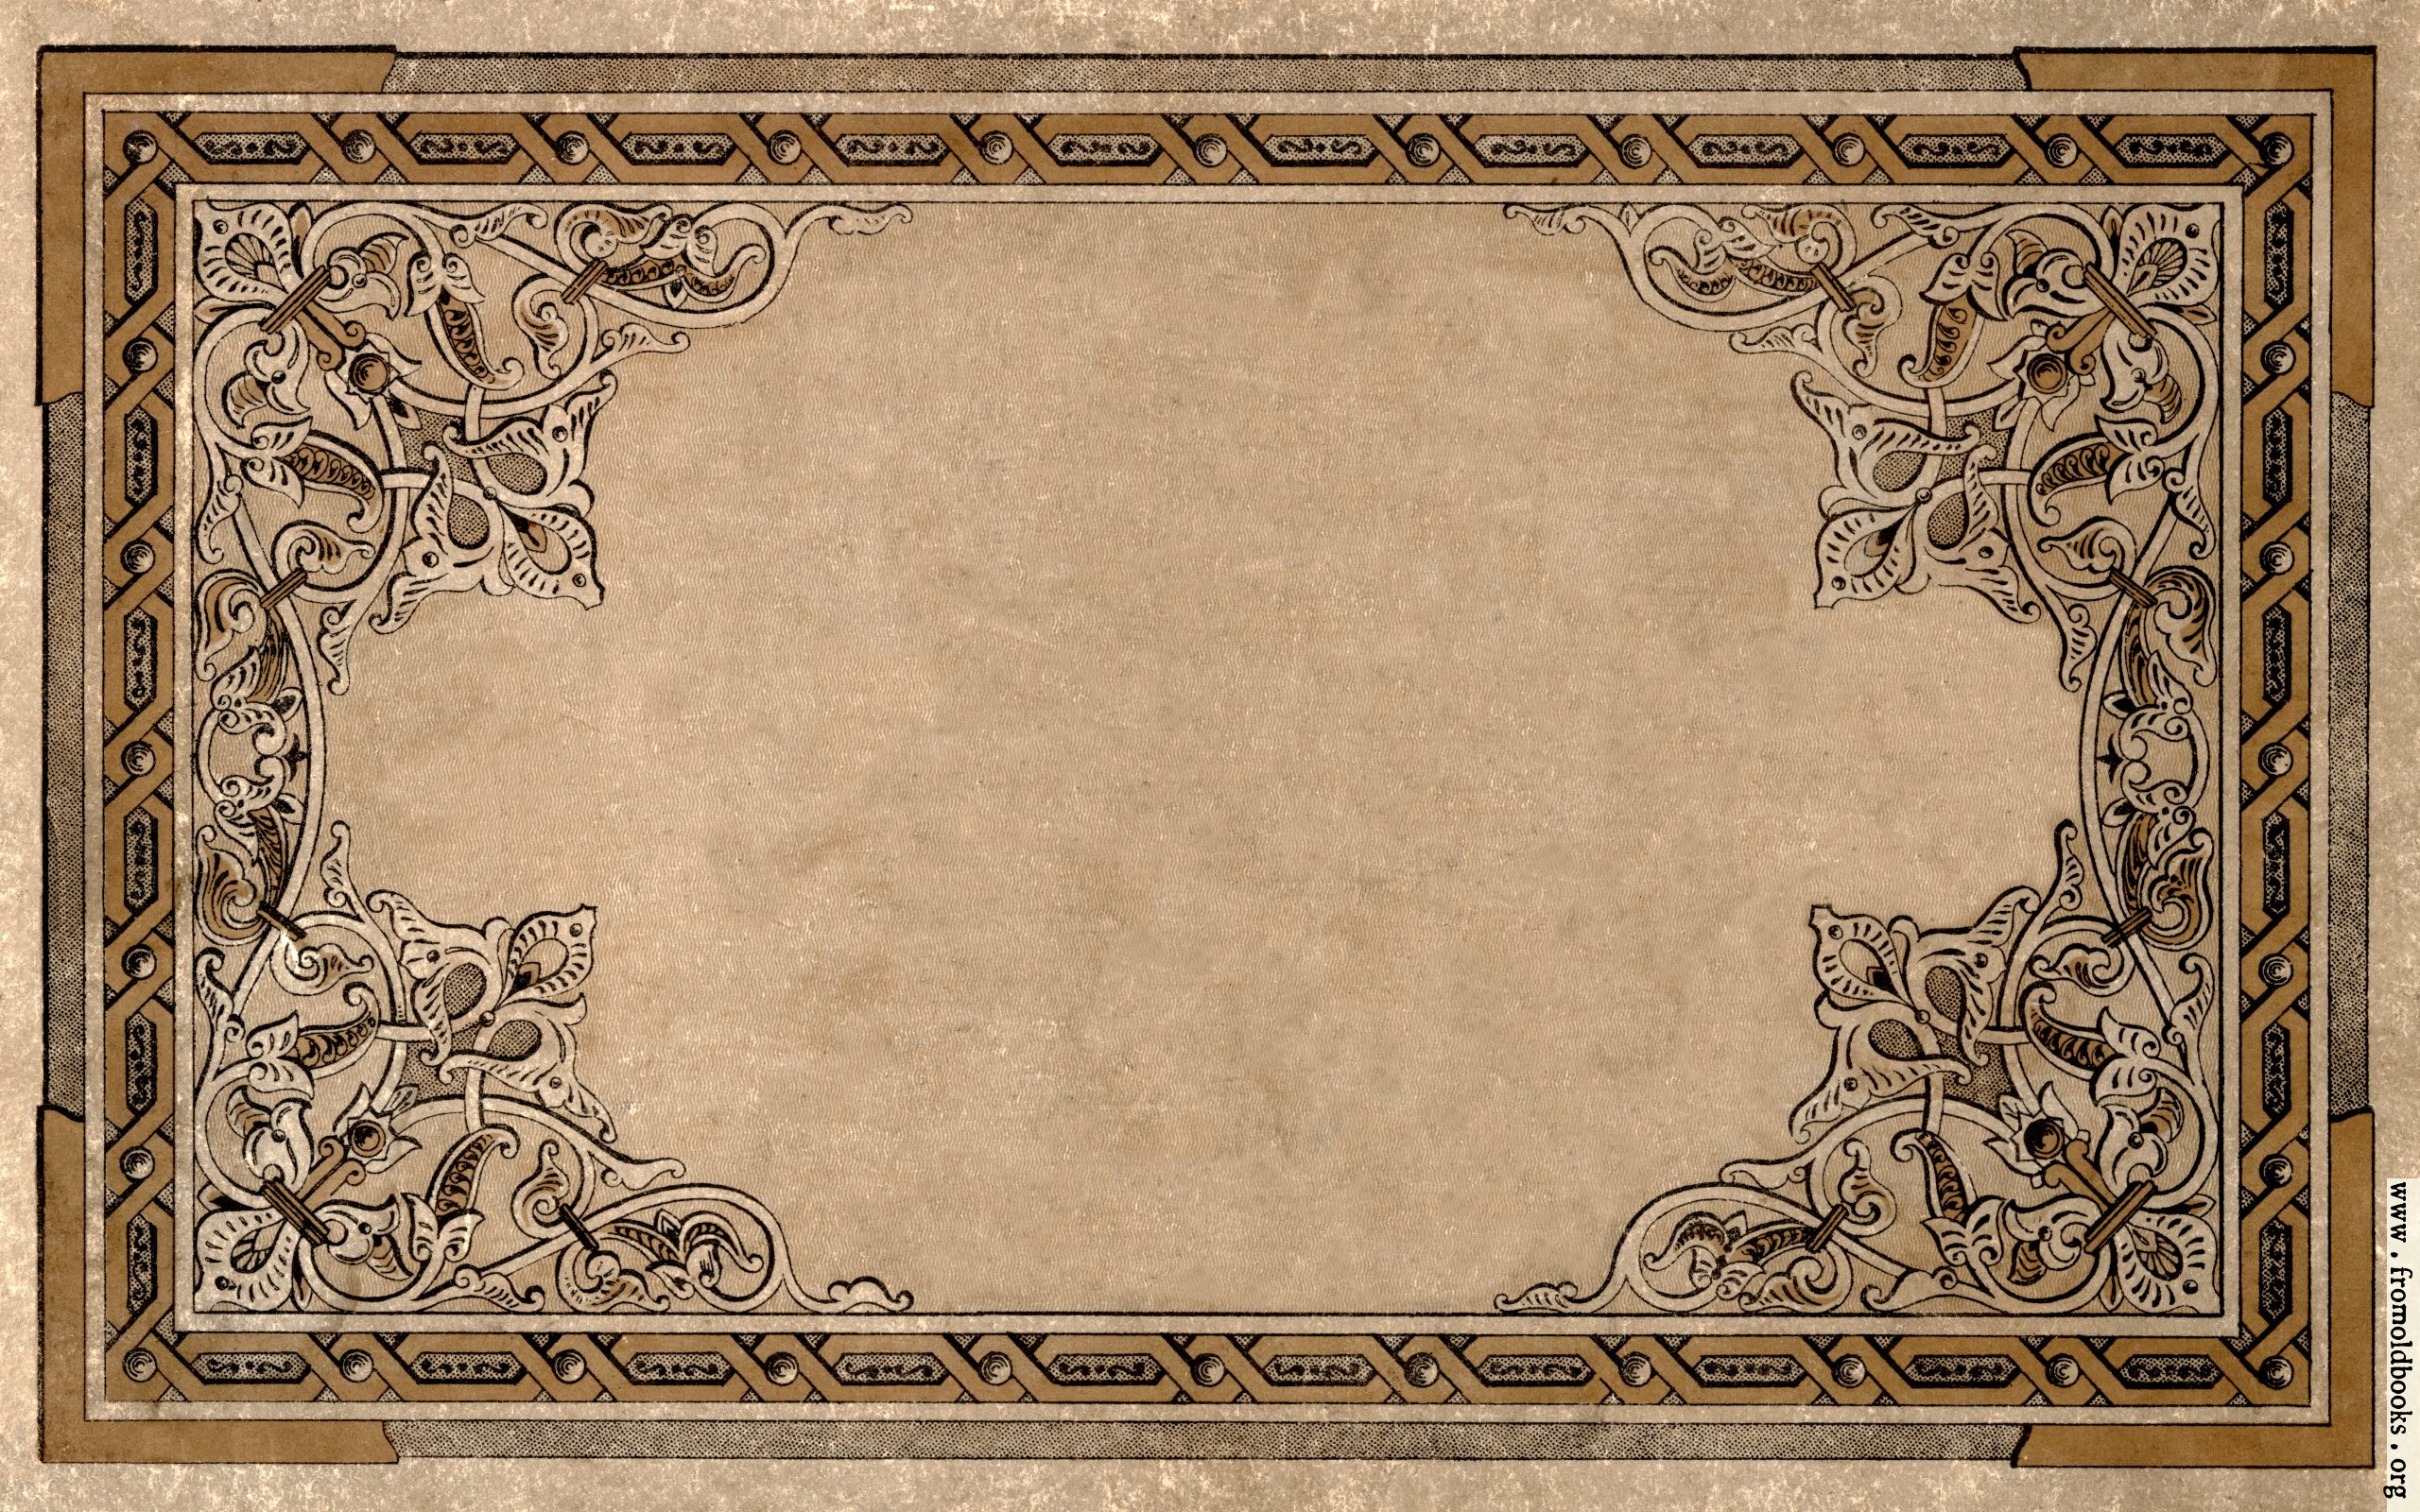 Old Book Cover Background : Vintage ornate border